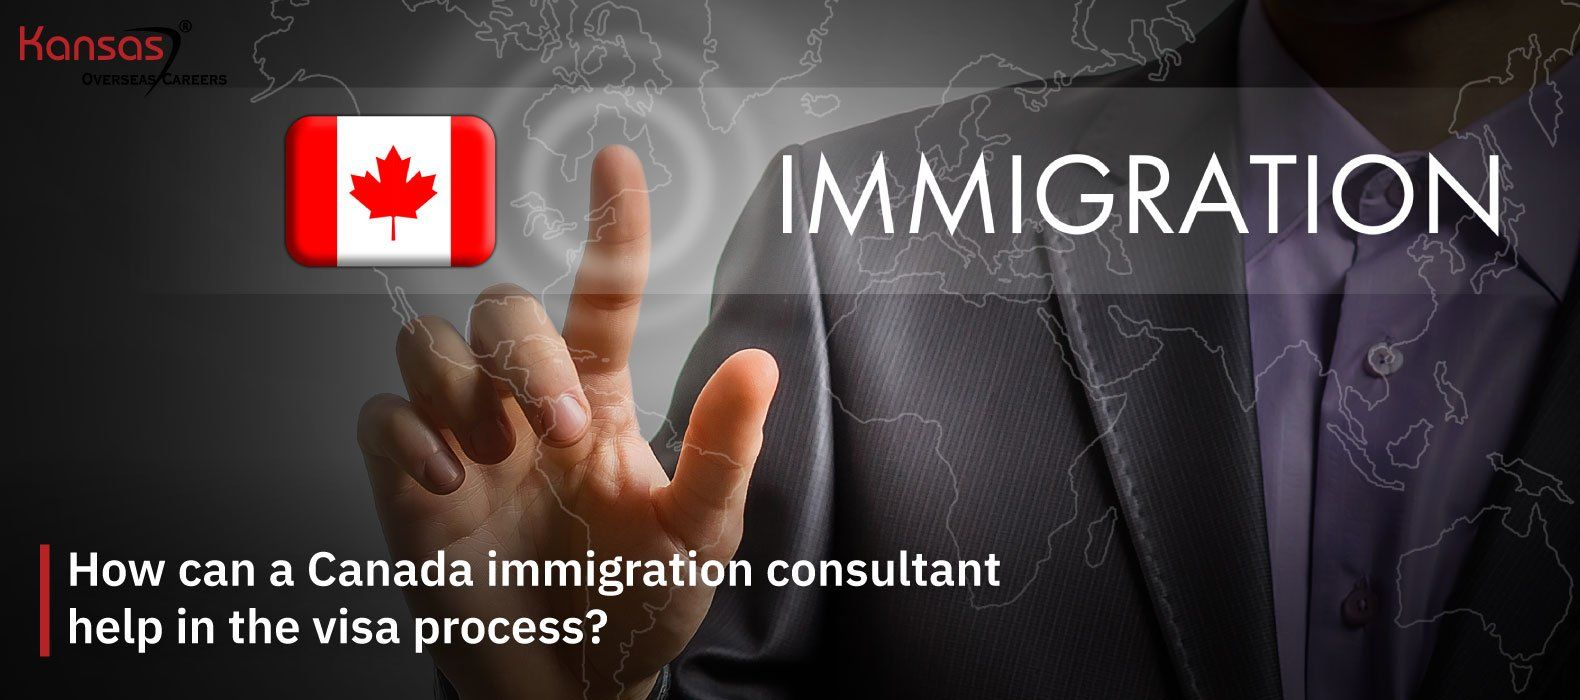 How-can-a-Canada-immigration-consultant-help-in-the-visa-process